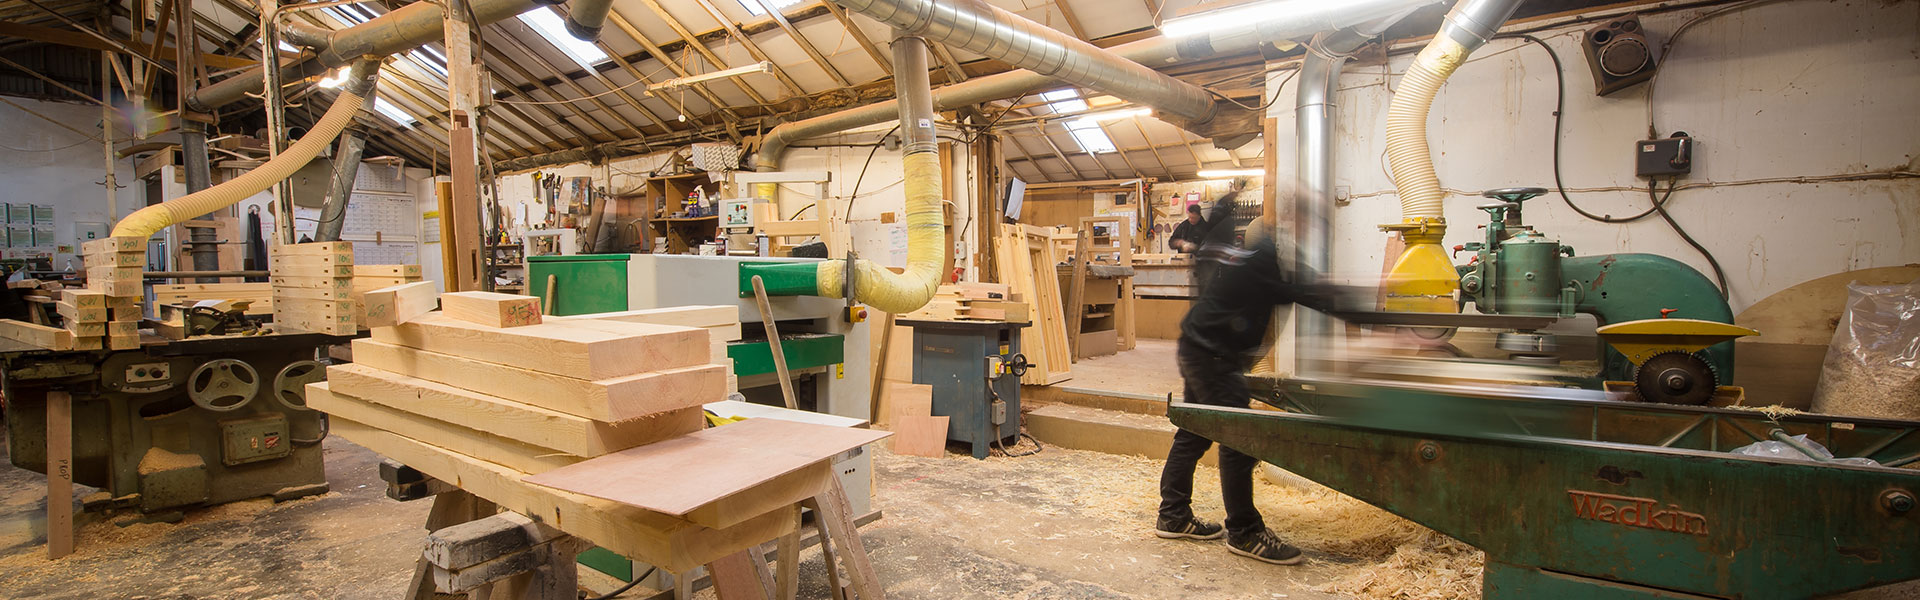 Timber Workshop